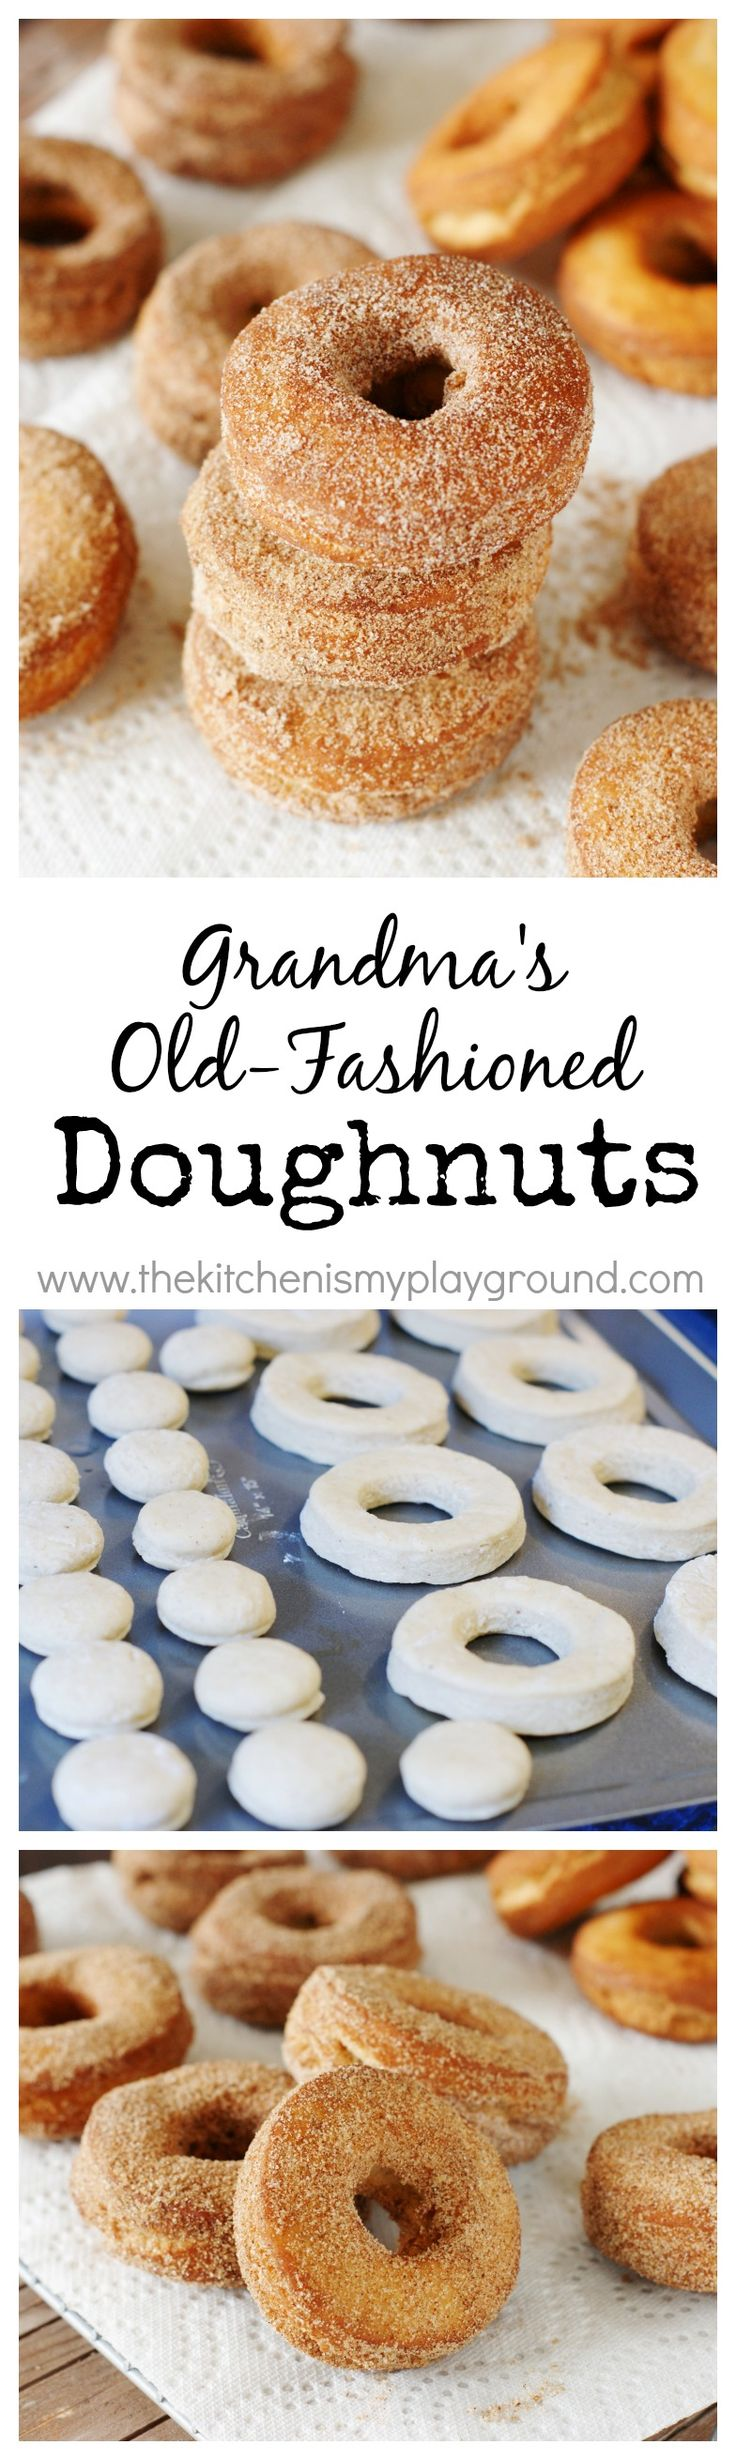 Grandma's Old-Fashioned Doughnuts ~ serve up these cakey beauties plain or coated in cinnamon sugar, like Grandma does! www.thekitchenismyplayground.com